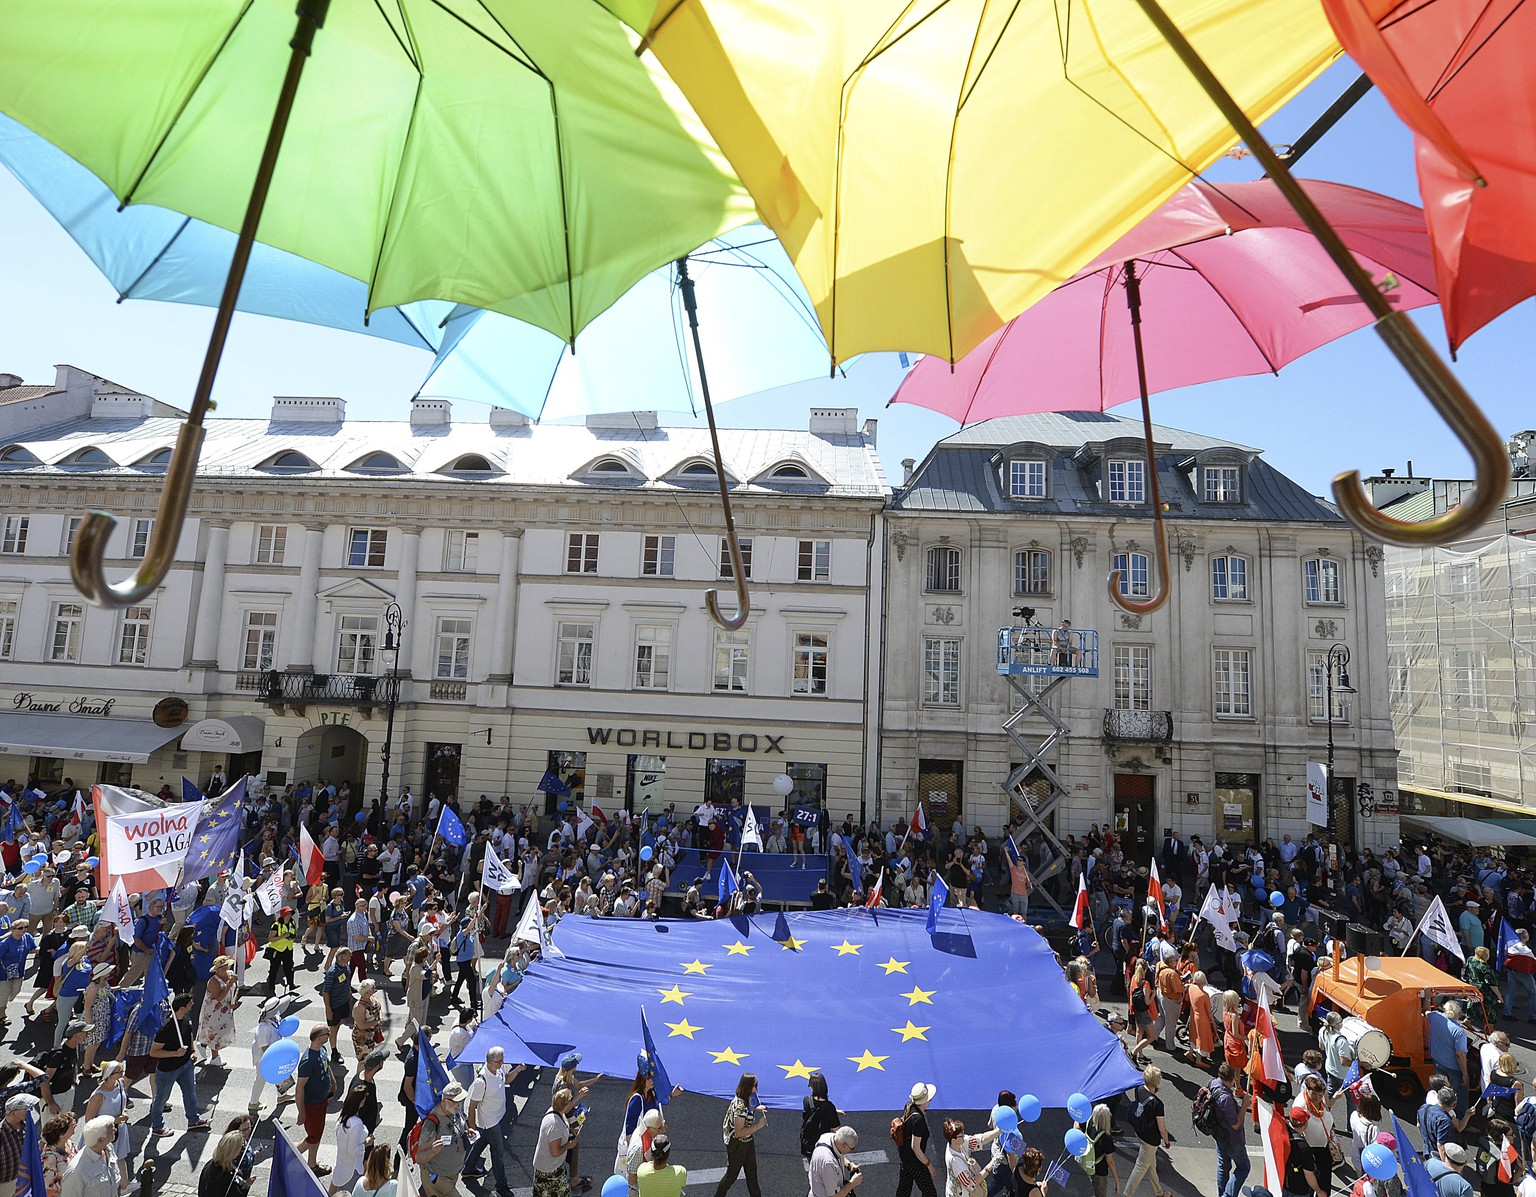 People hold a European flag as they take part in a demonstration during an anti-government protest, called 'Freedom March' and organized by opposition parties, in Warsaw, Poland, Saturday, May 12, 2018. (AP Photo/Czarek Sokolowski)